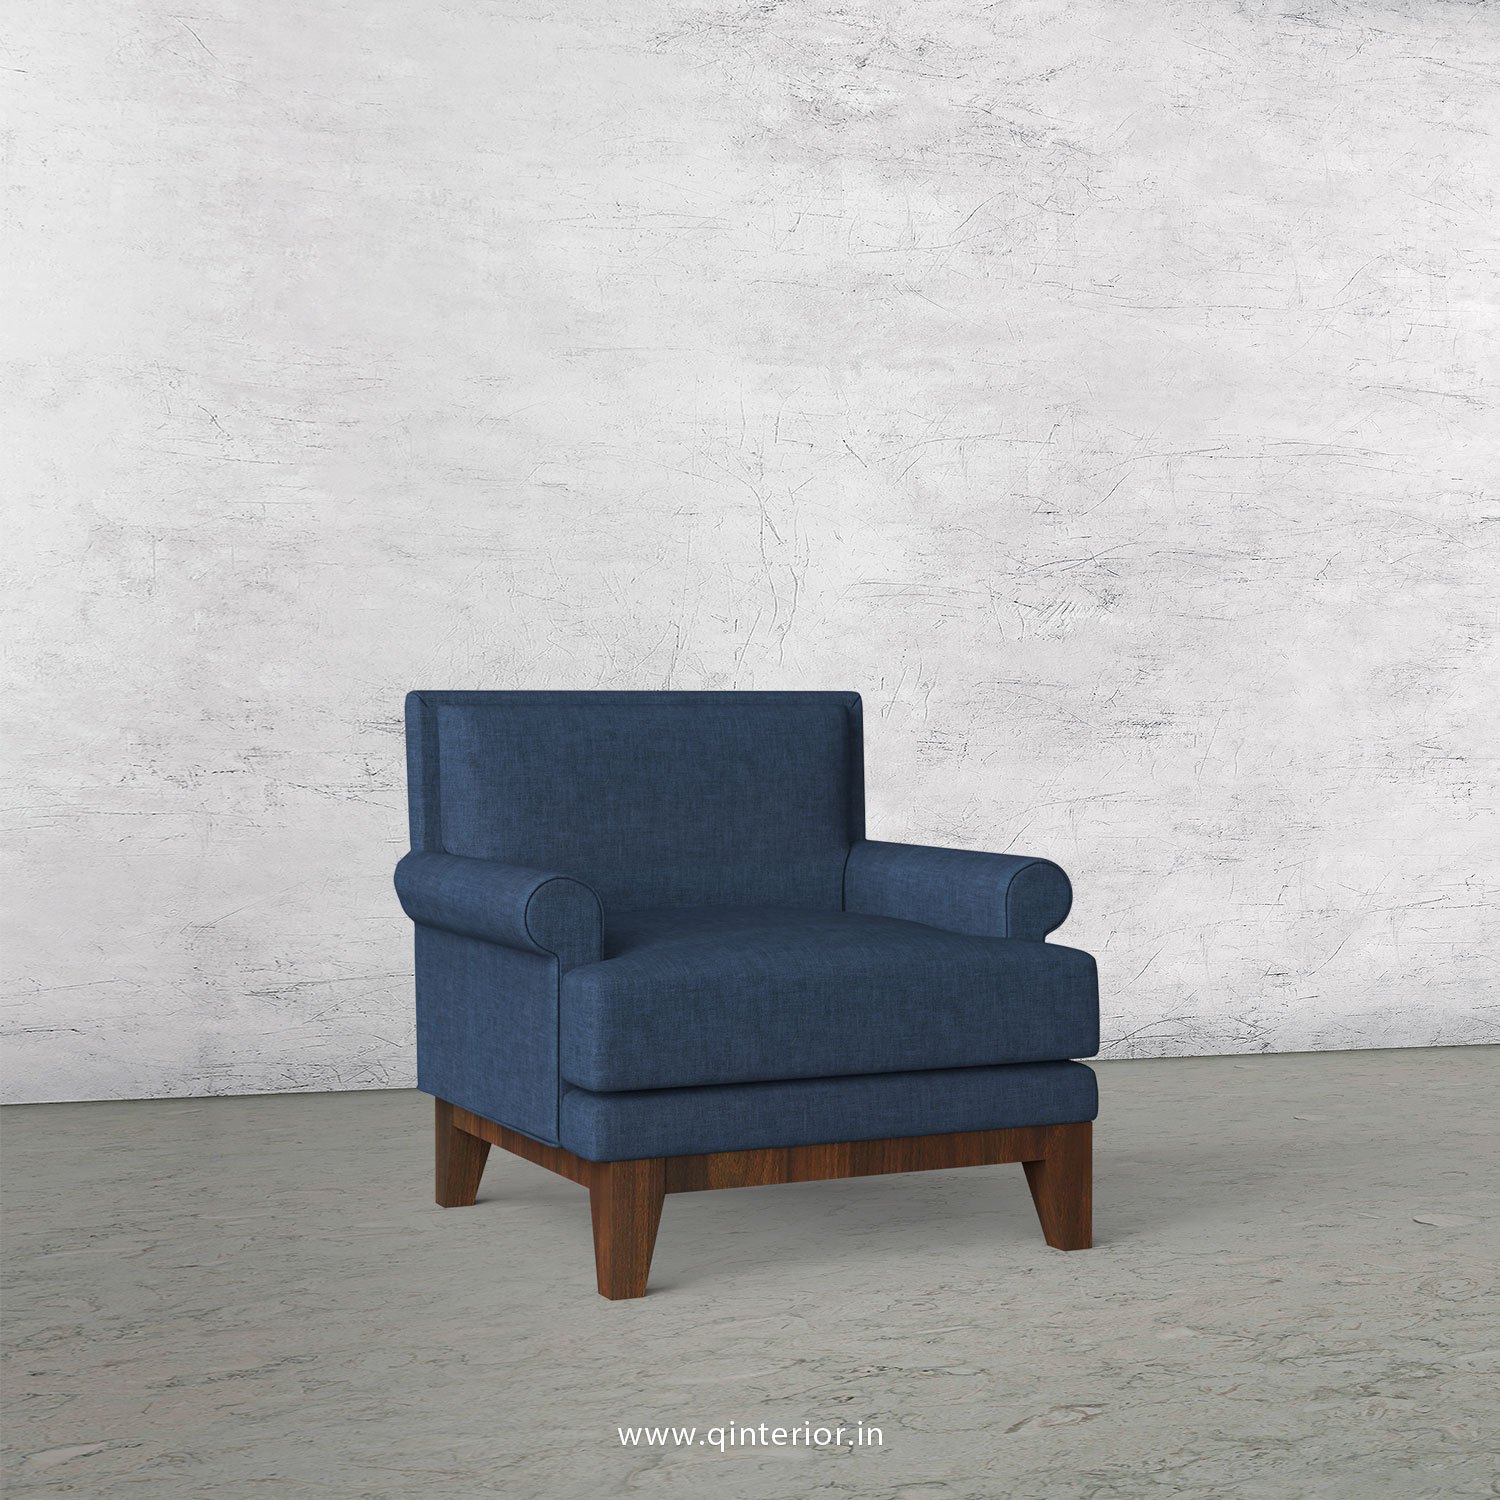 Aviana 1 Seater Sofa in Cotton Plain - SFA001 CP15